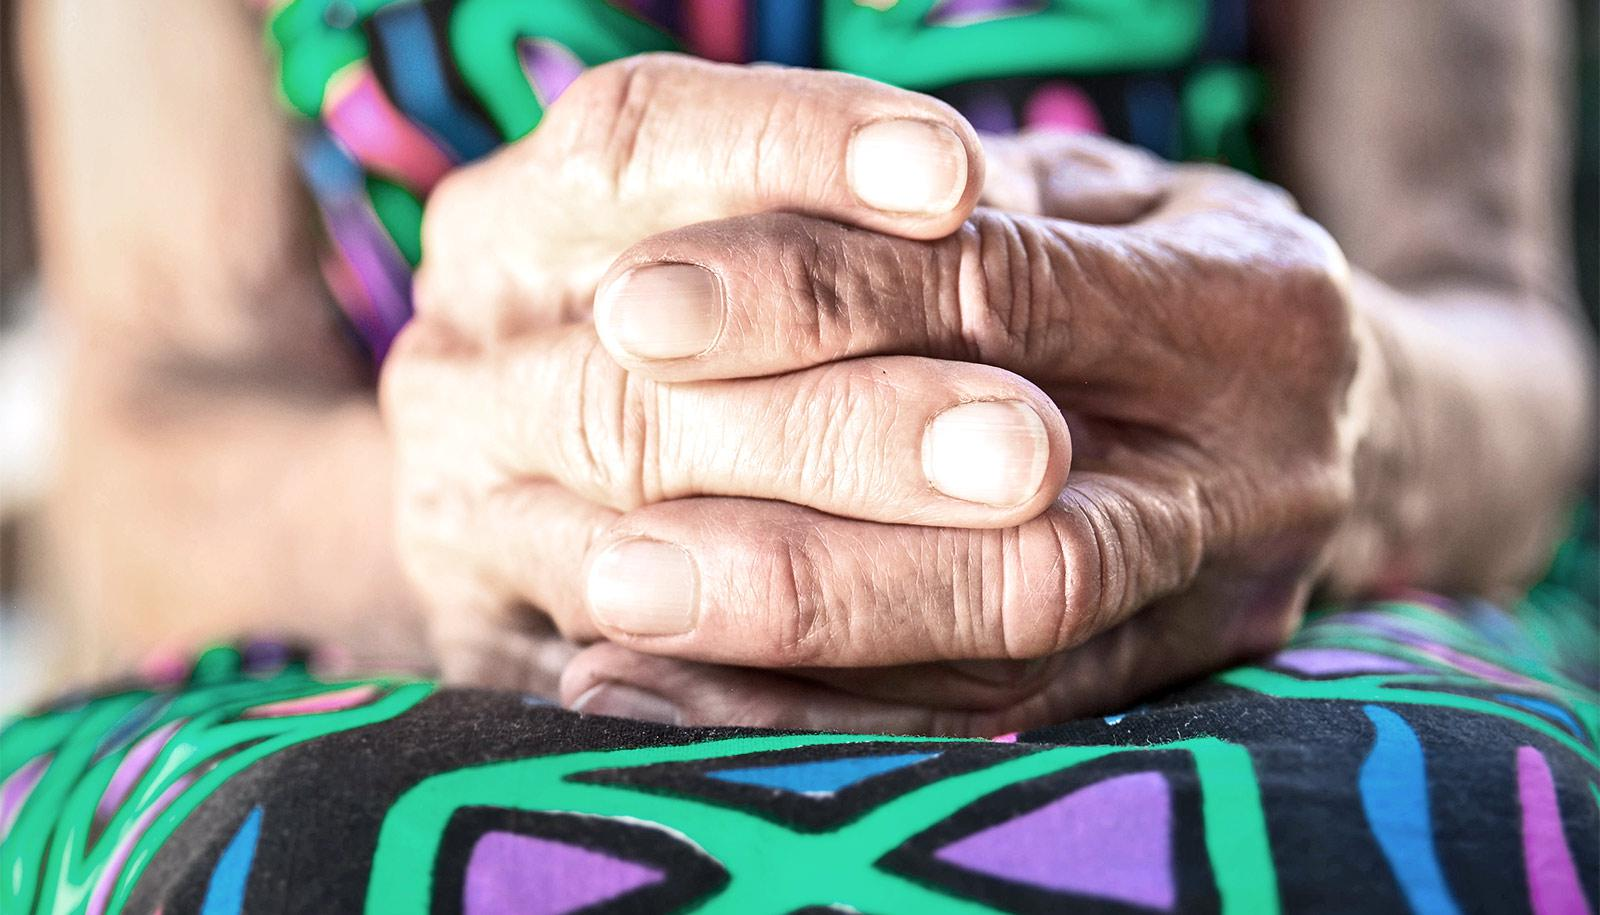 older woman's hands on colorful dress (rapamycin concept)